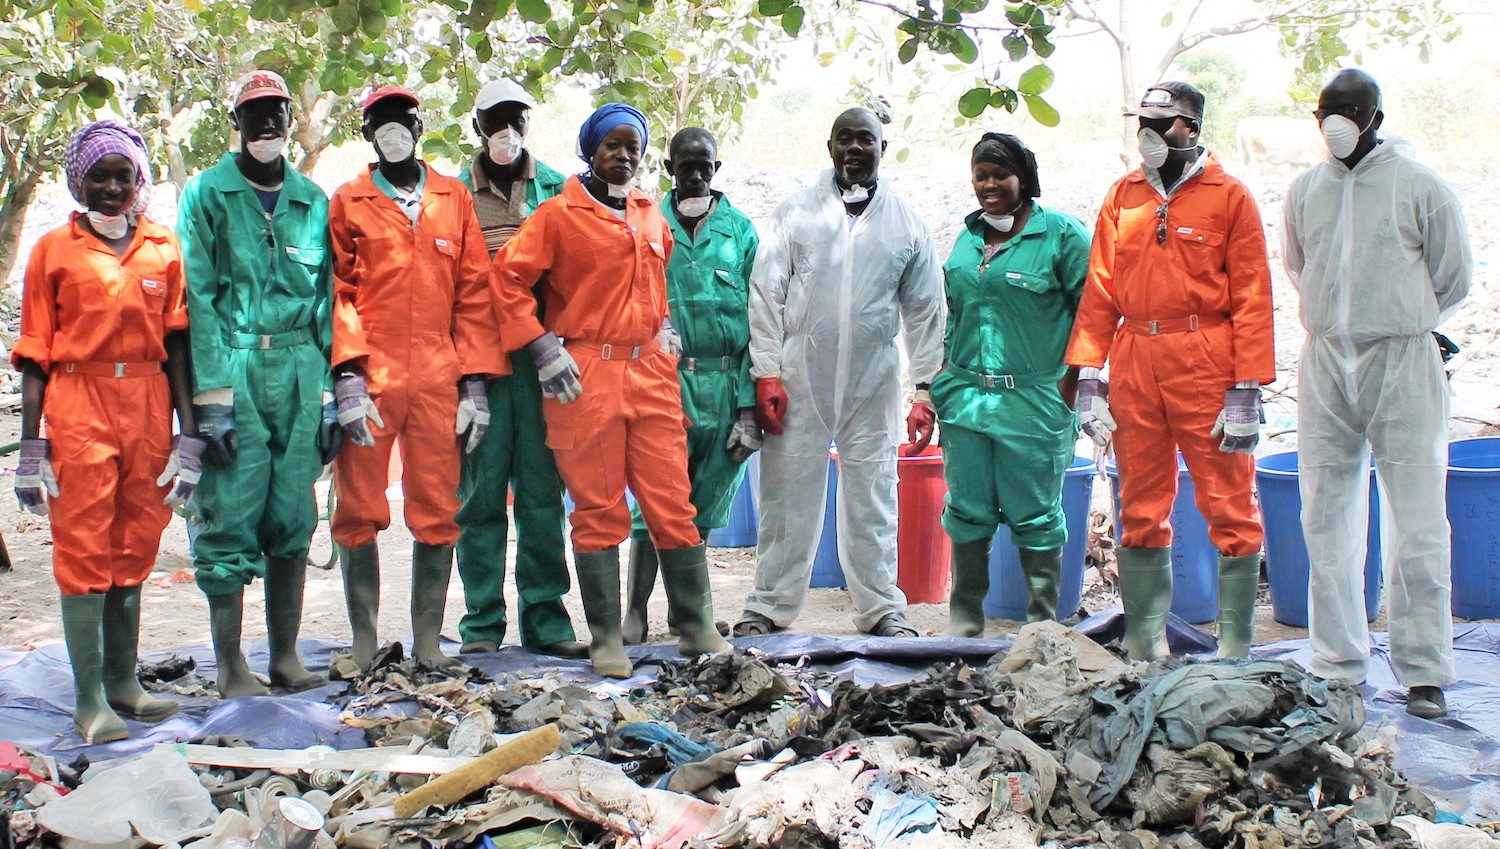 WCA waste sorting team